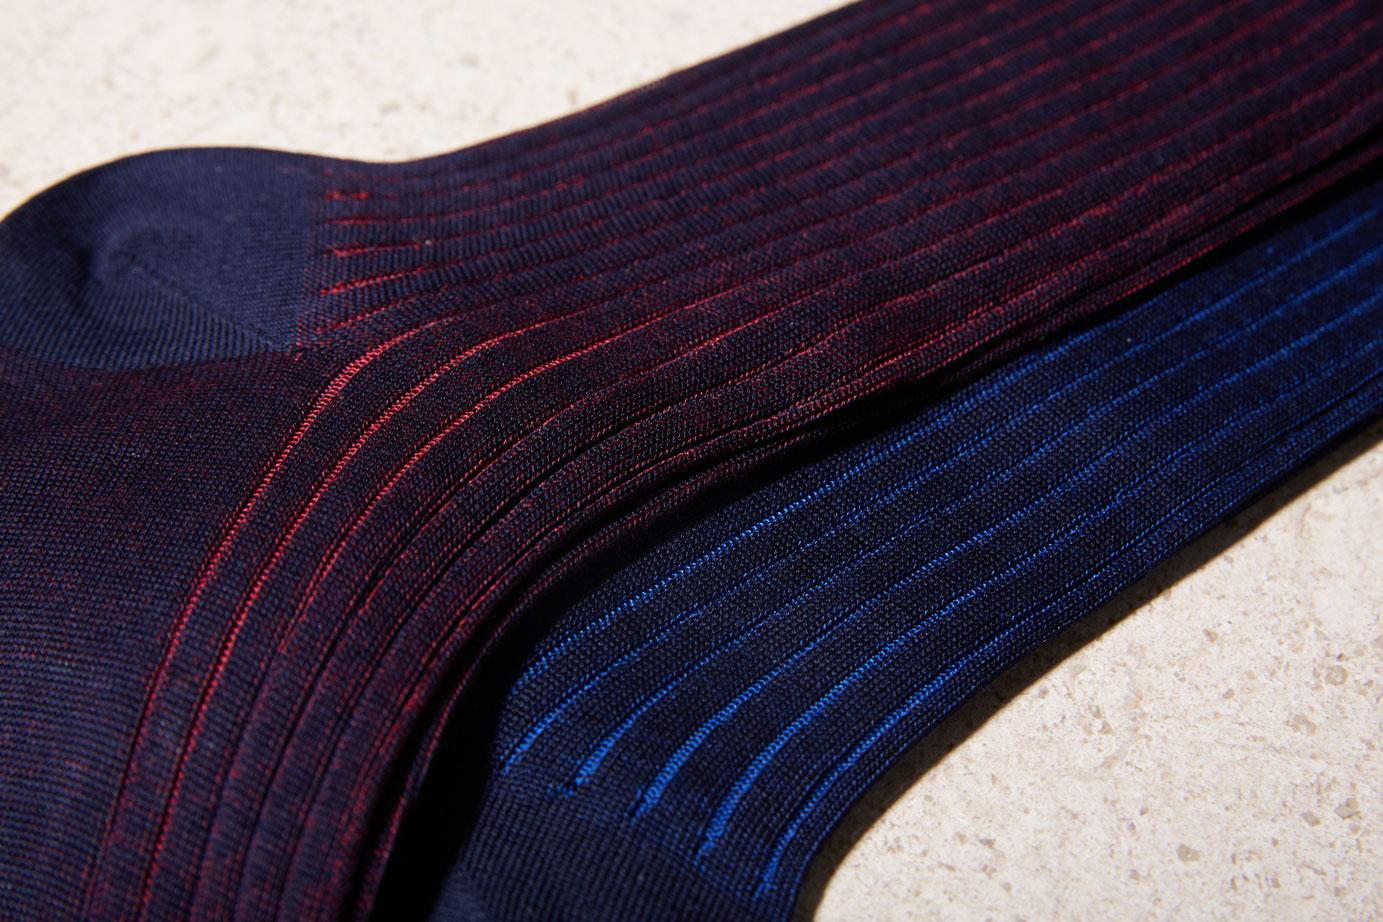 Bresciani cotton socks in blue and red stripes. Large view.